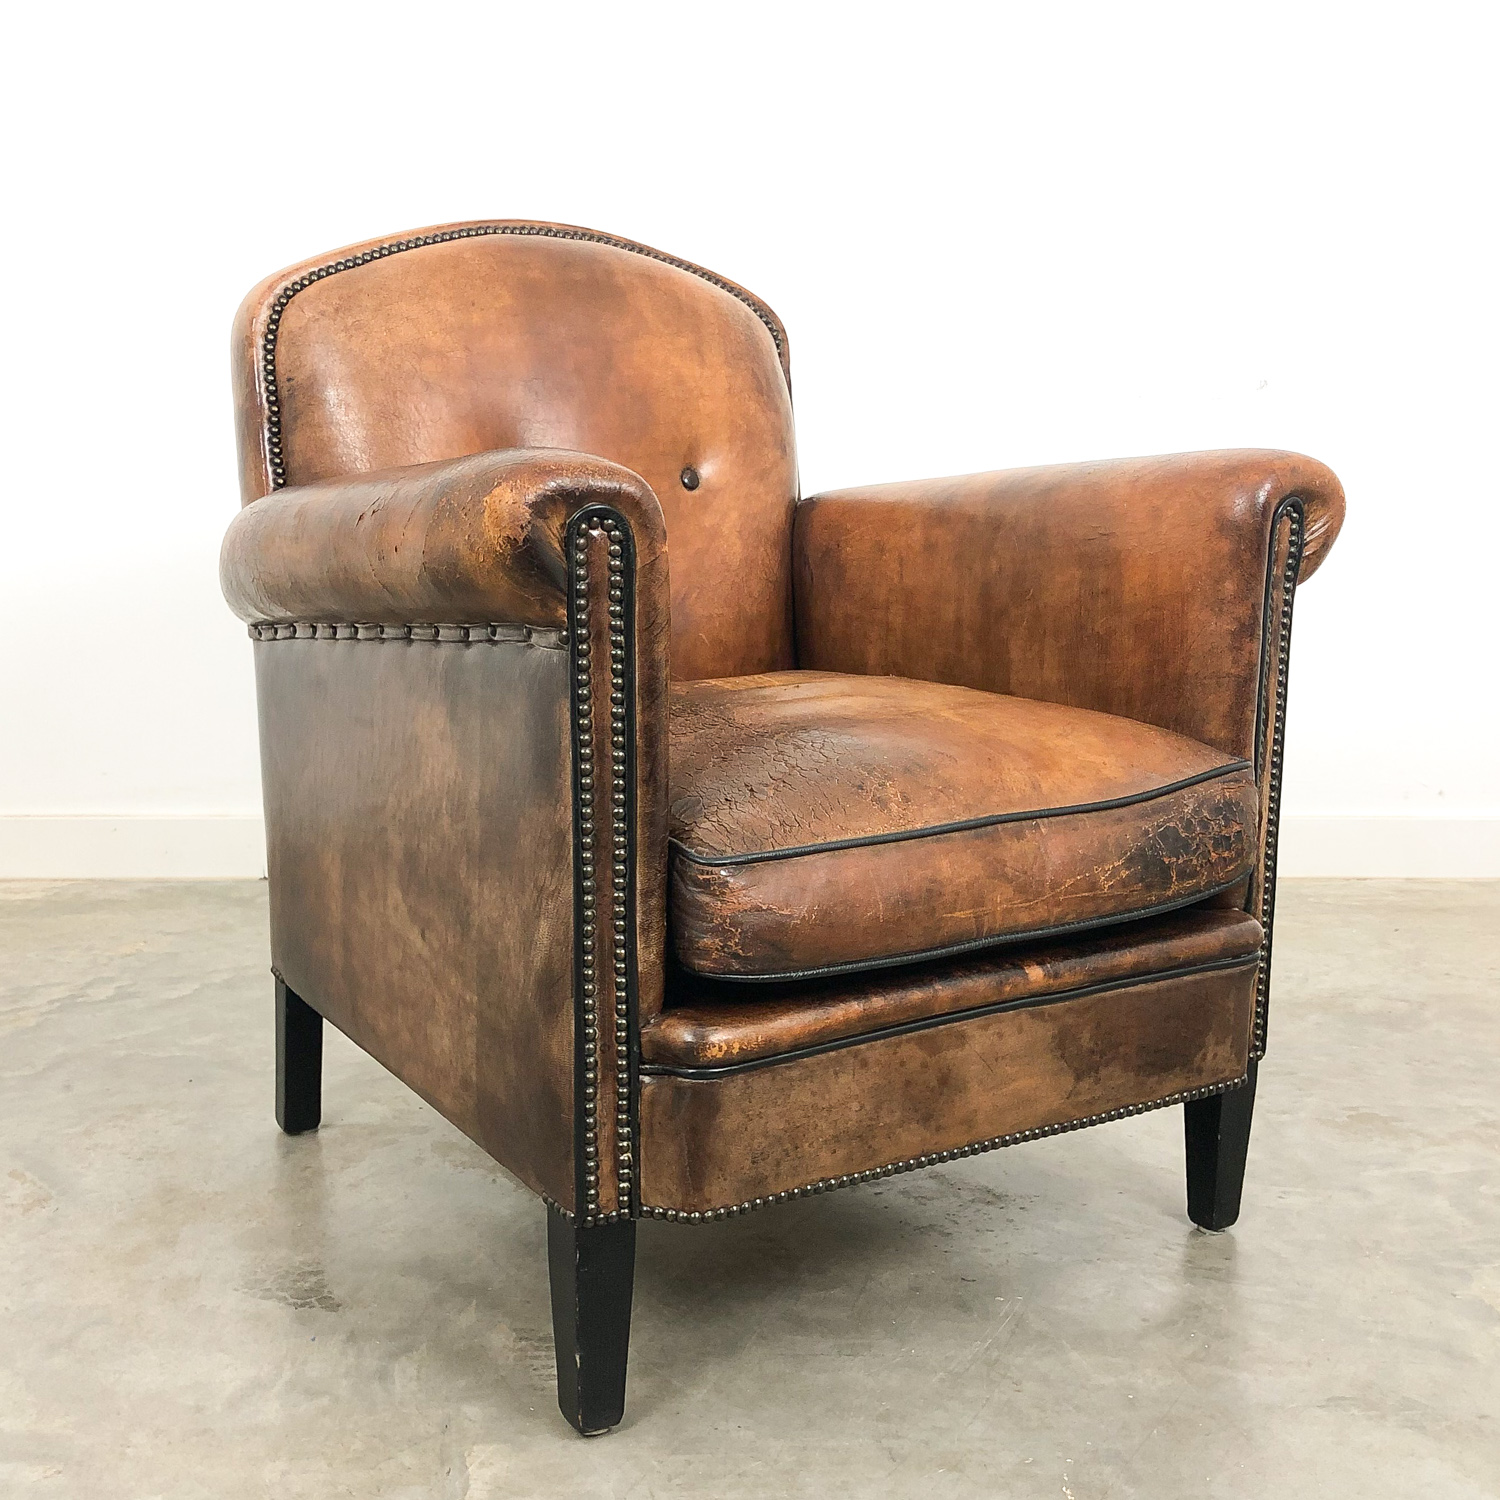 Vintage art deco sheep leather arm chair